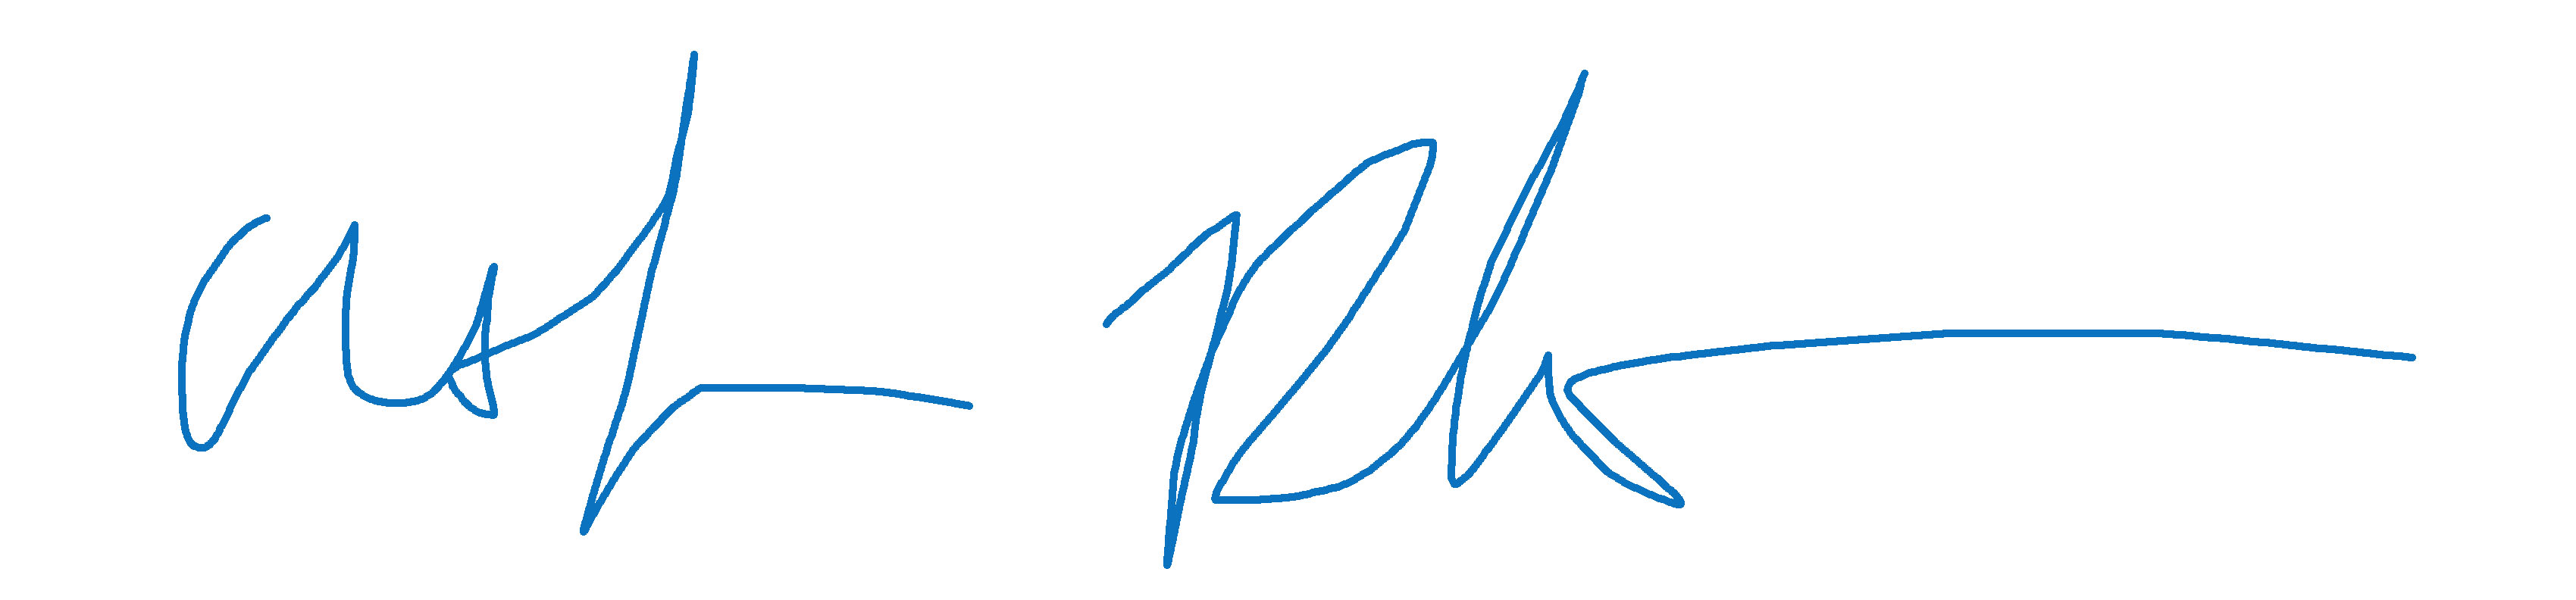 Asher_Platts_Signature.jpg